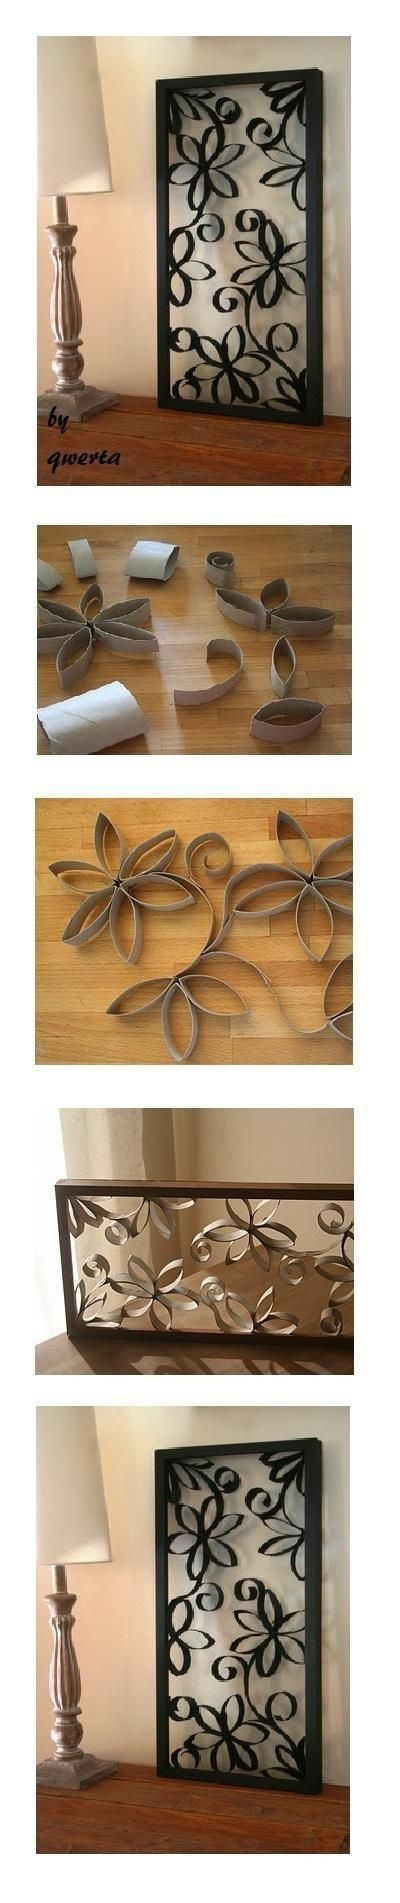 DIY Toilet Paper Roll Wall Decoration: